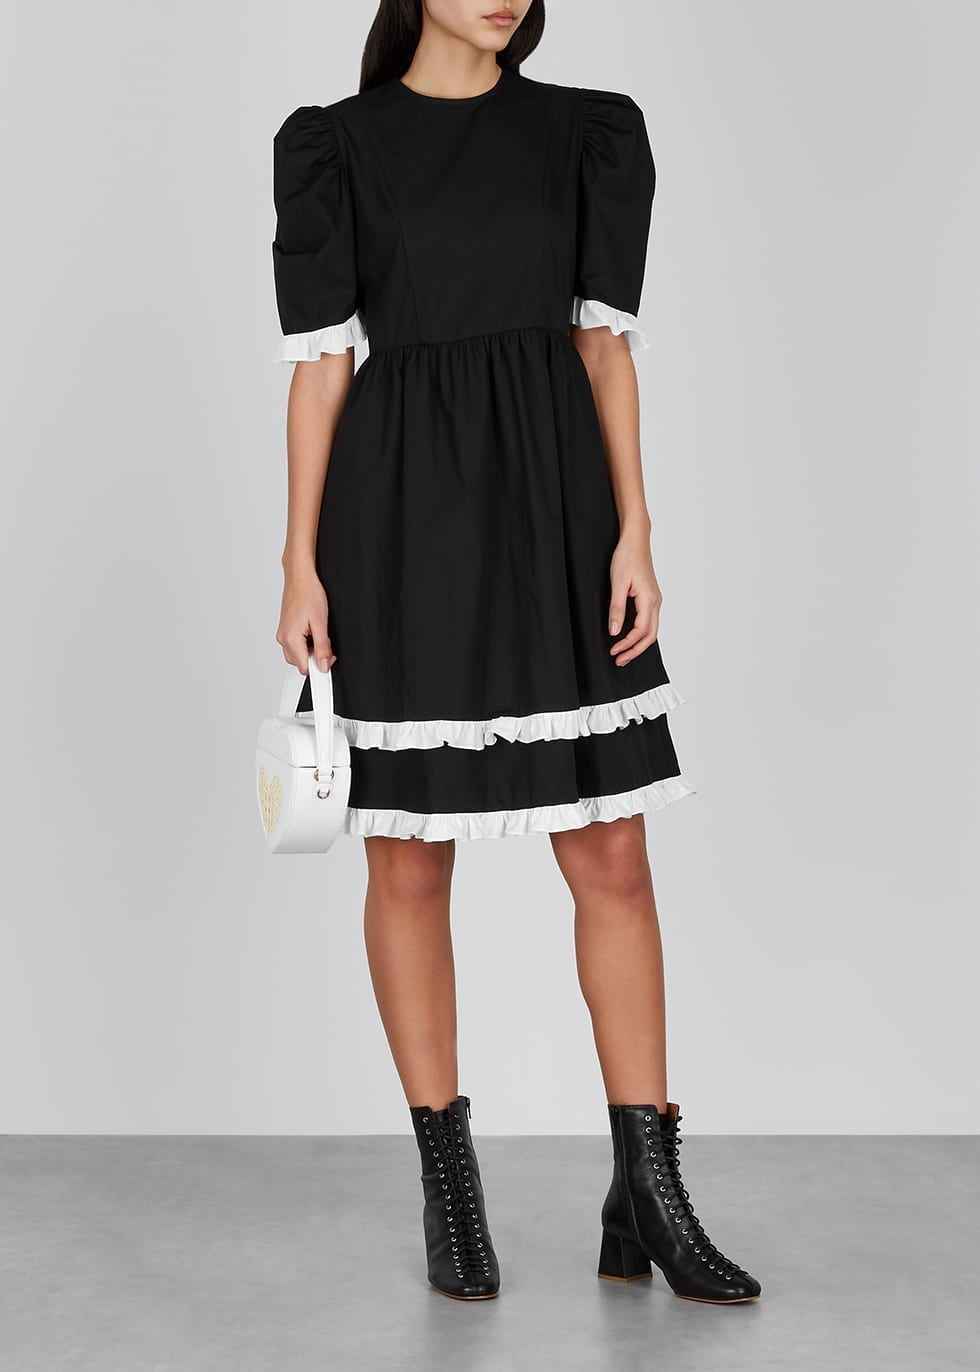 BATSHEVA Monochrome Ruffle-trimmed Cotton Dress